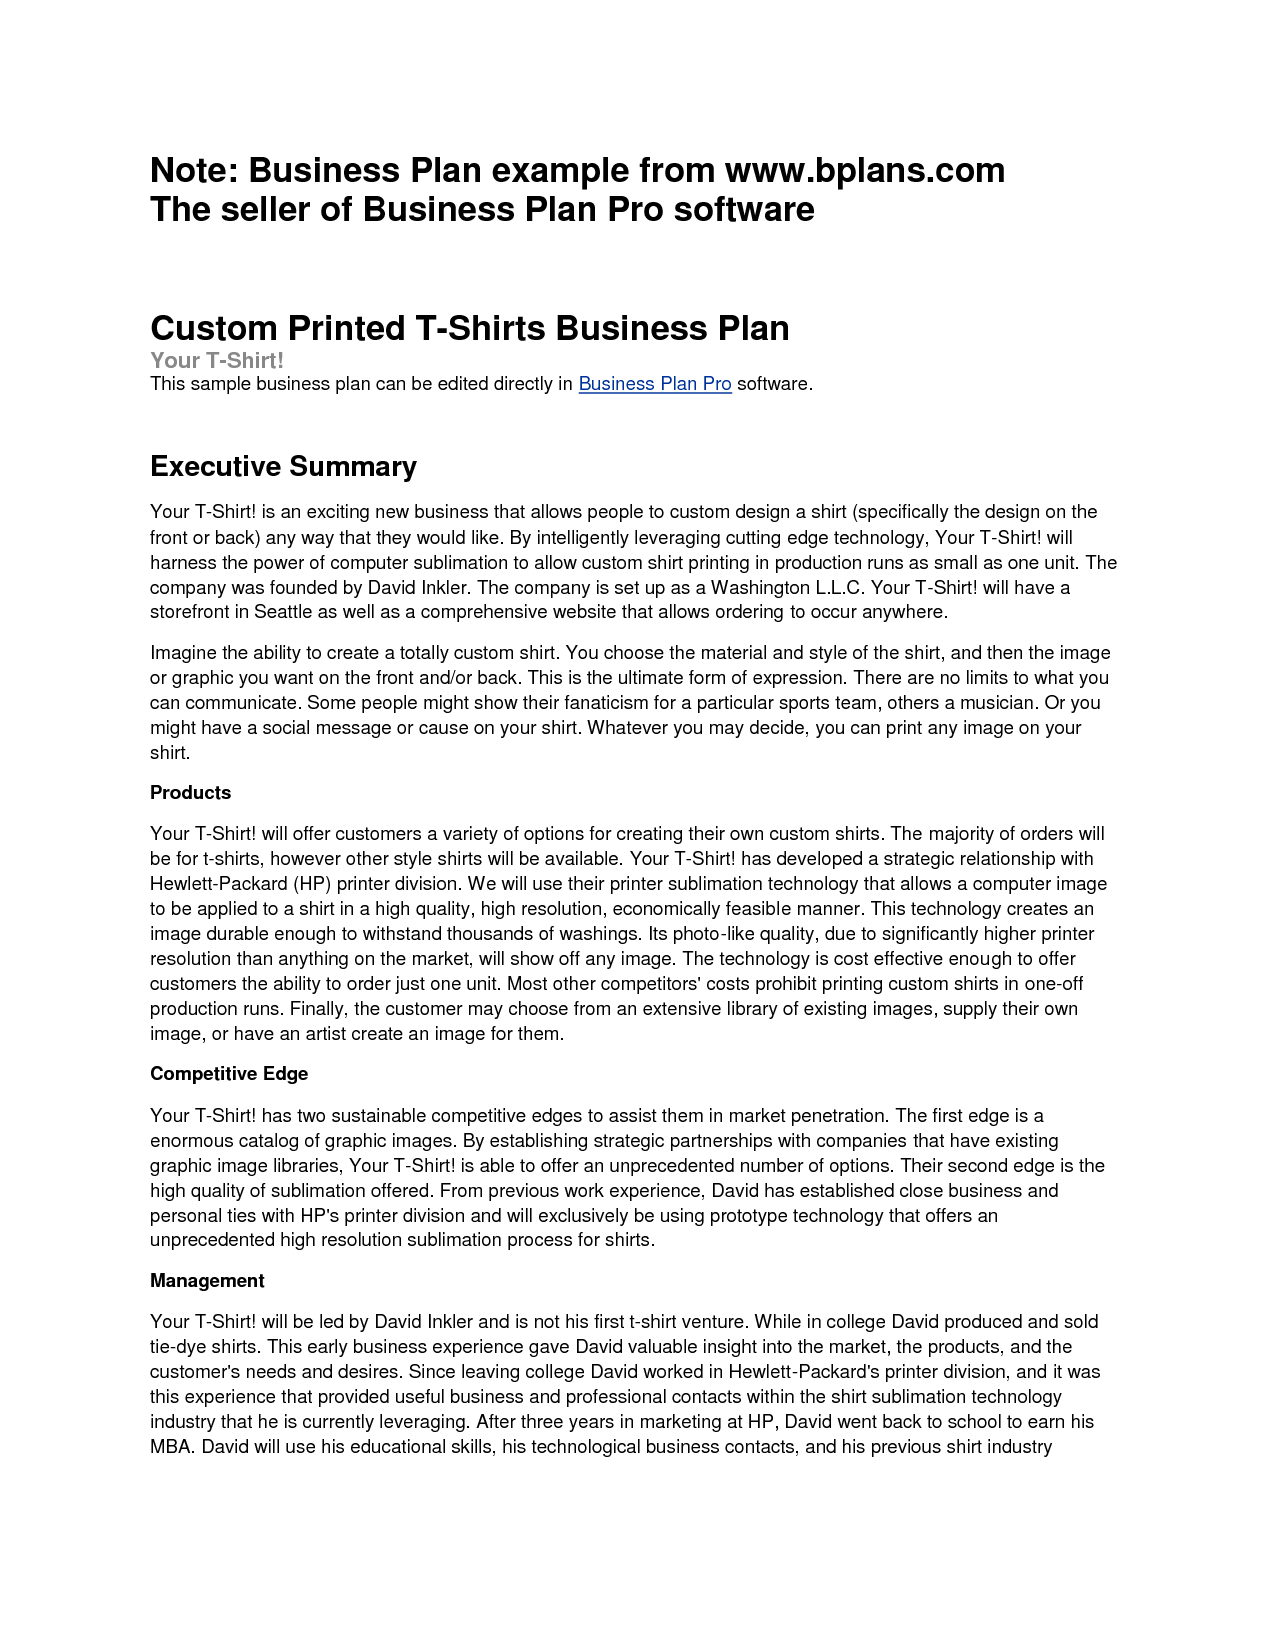 a written business plan pdf